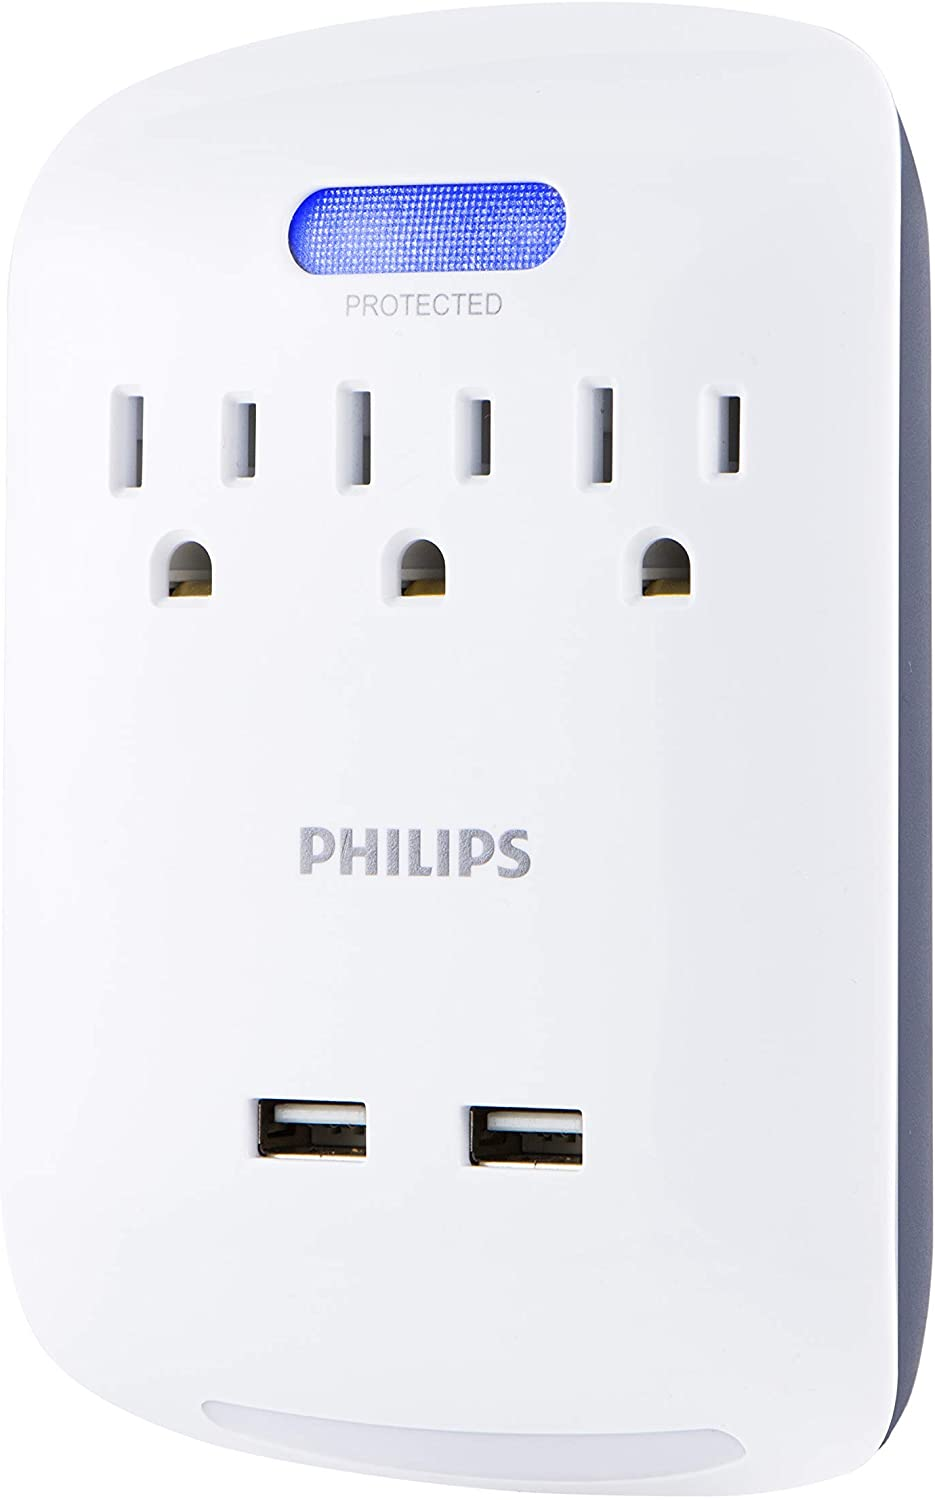 : PHILIPS 3 Outlet 2 USB Surge Protector with